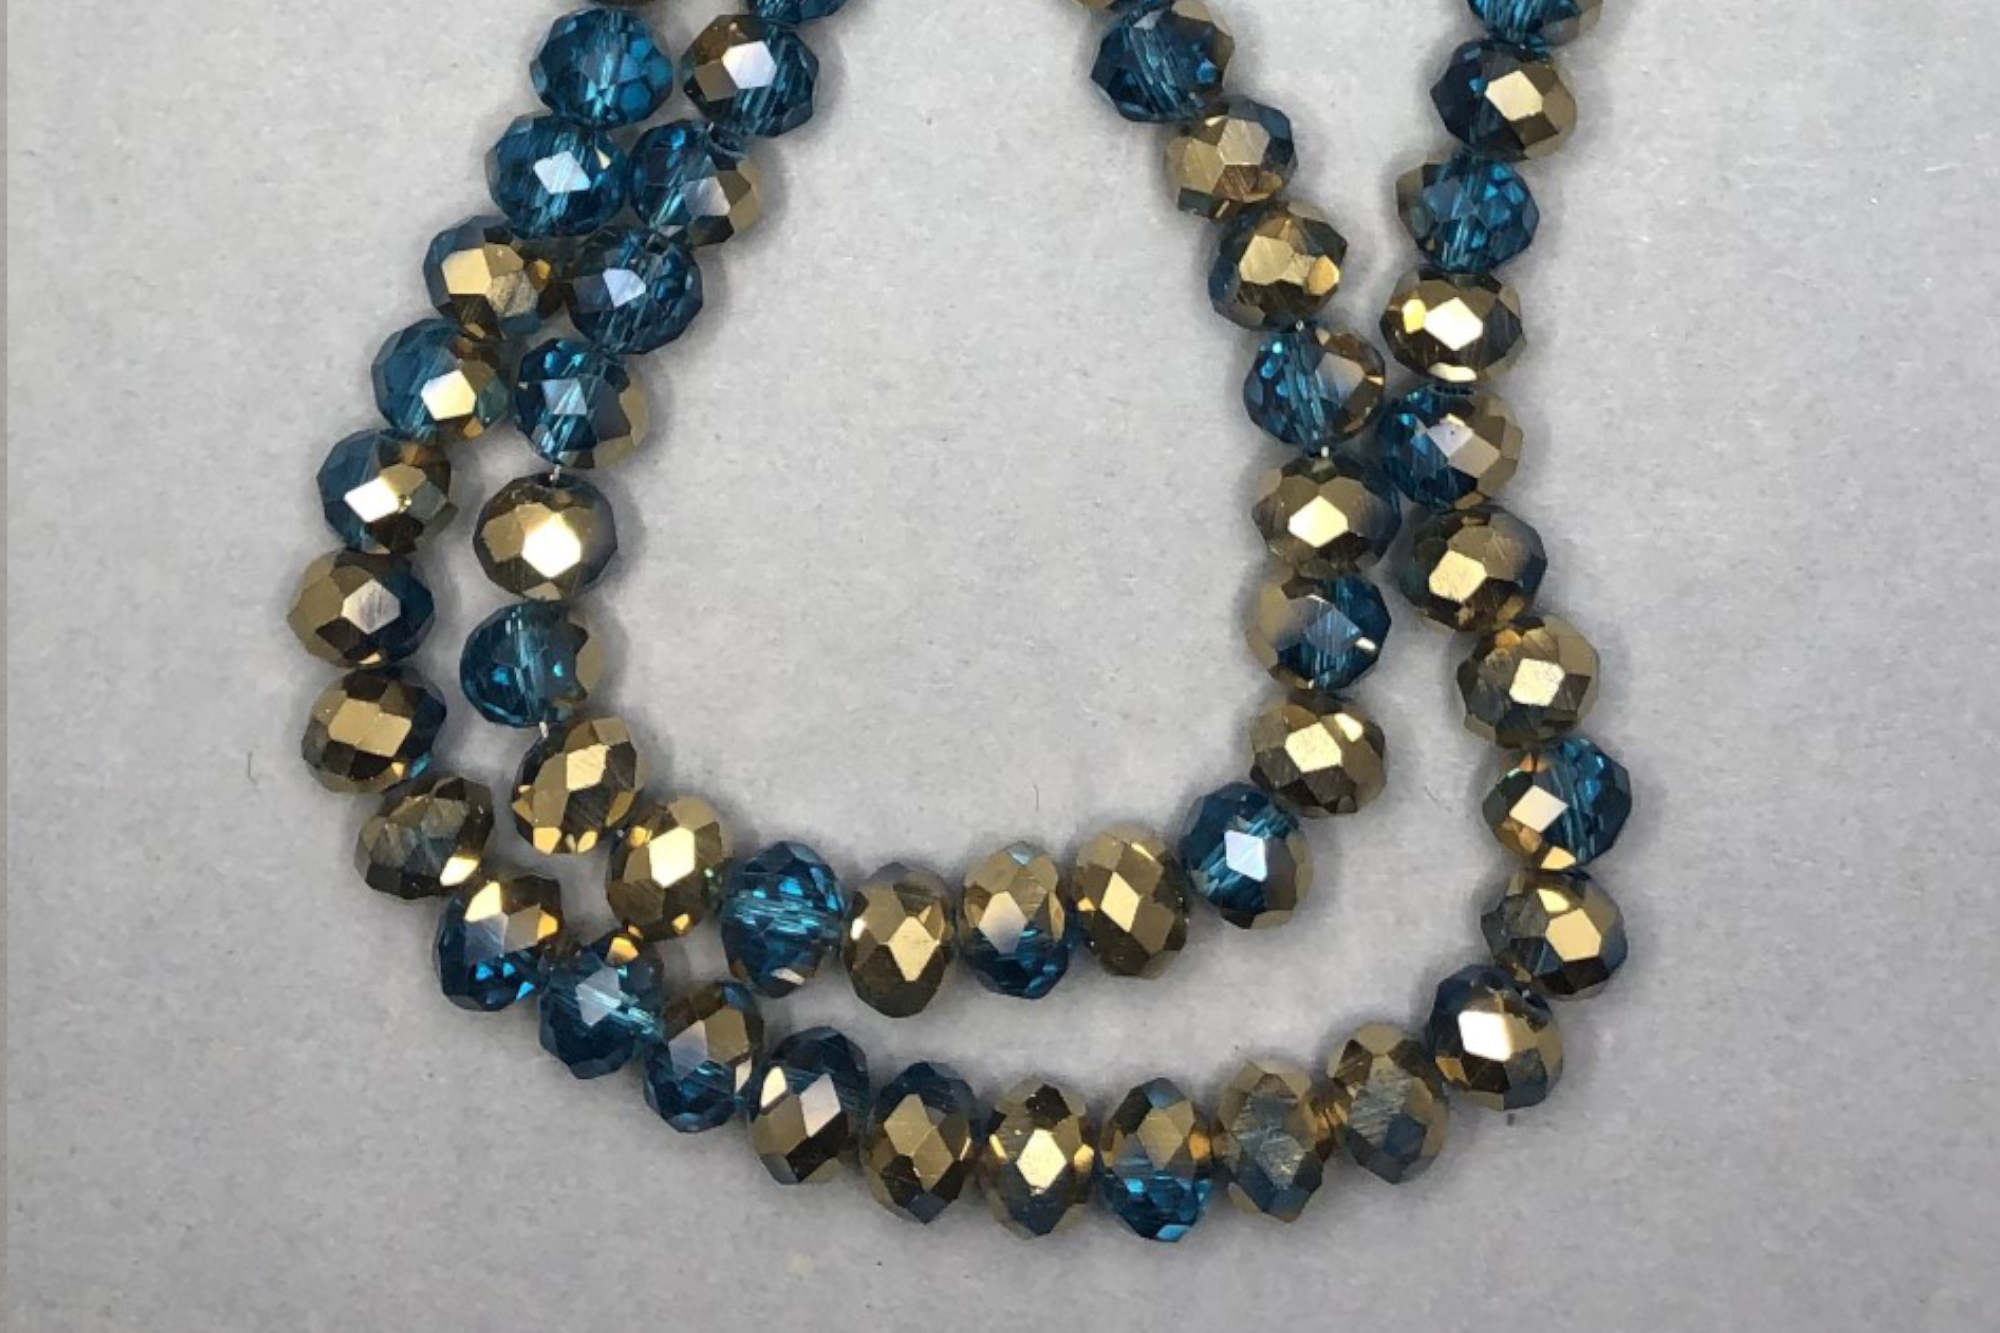 Half Teal/Bronze Faceted Glass Beads